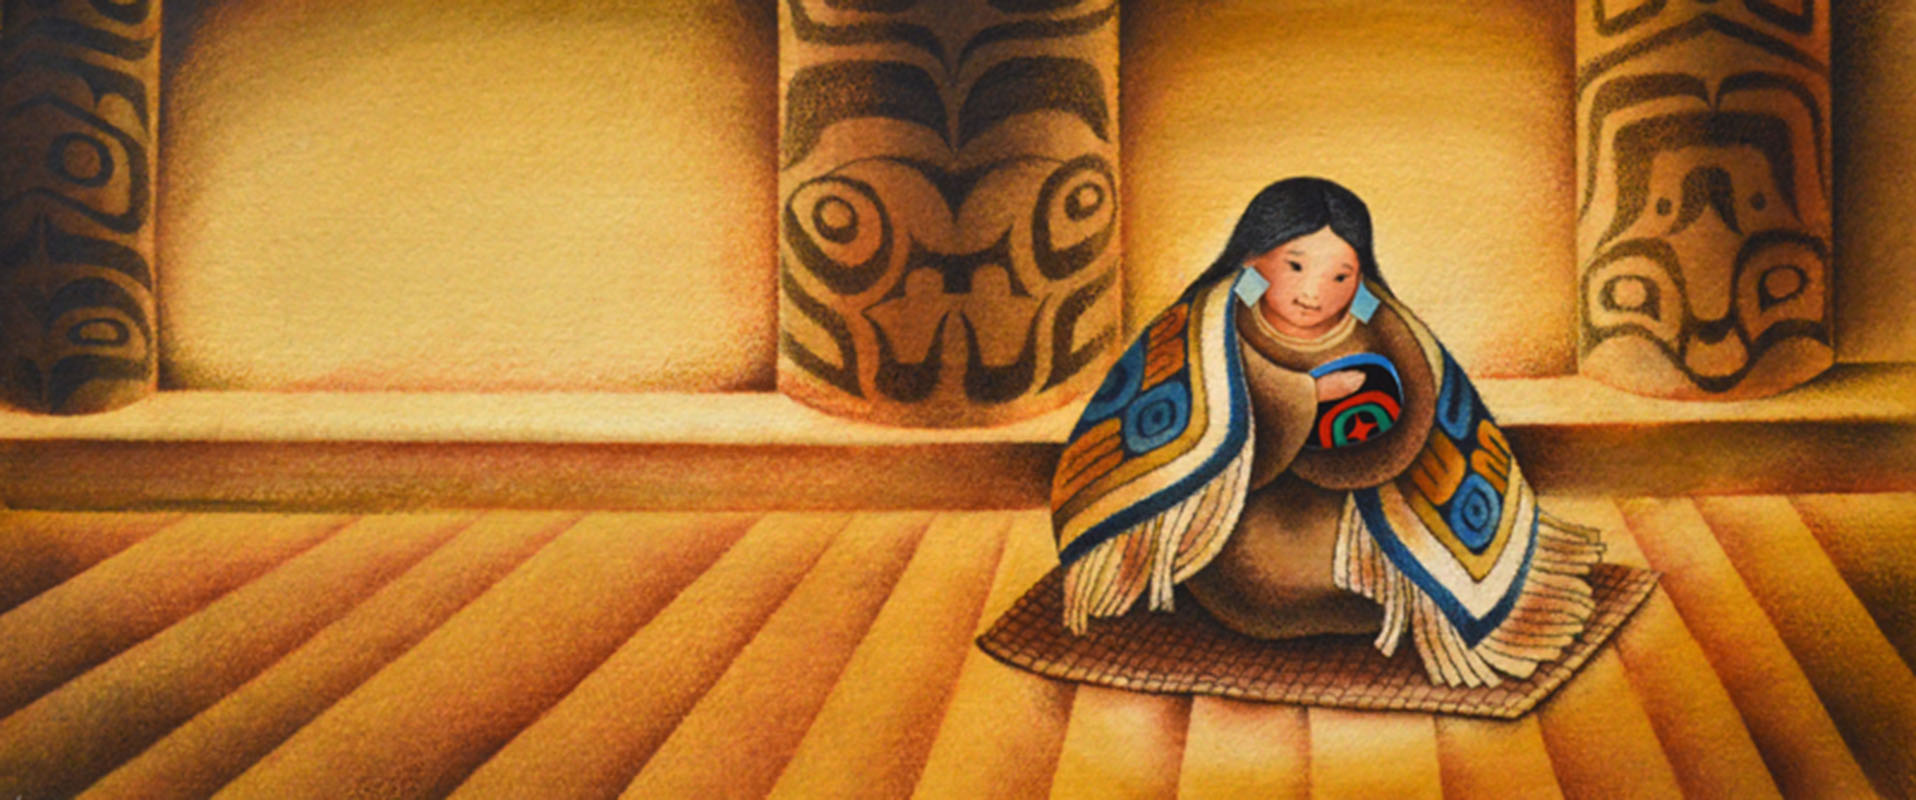 birth to a child raven a trickster tale from the pacific